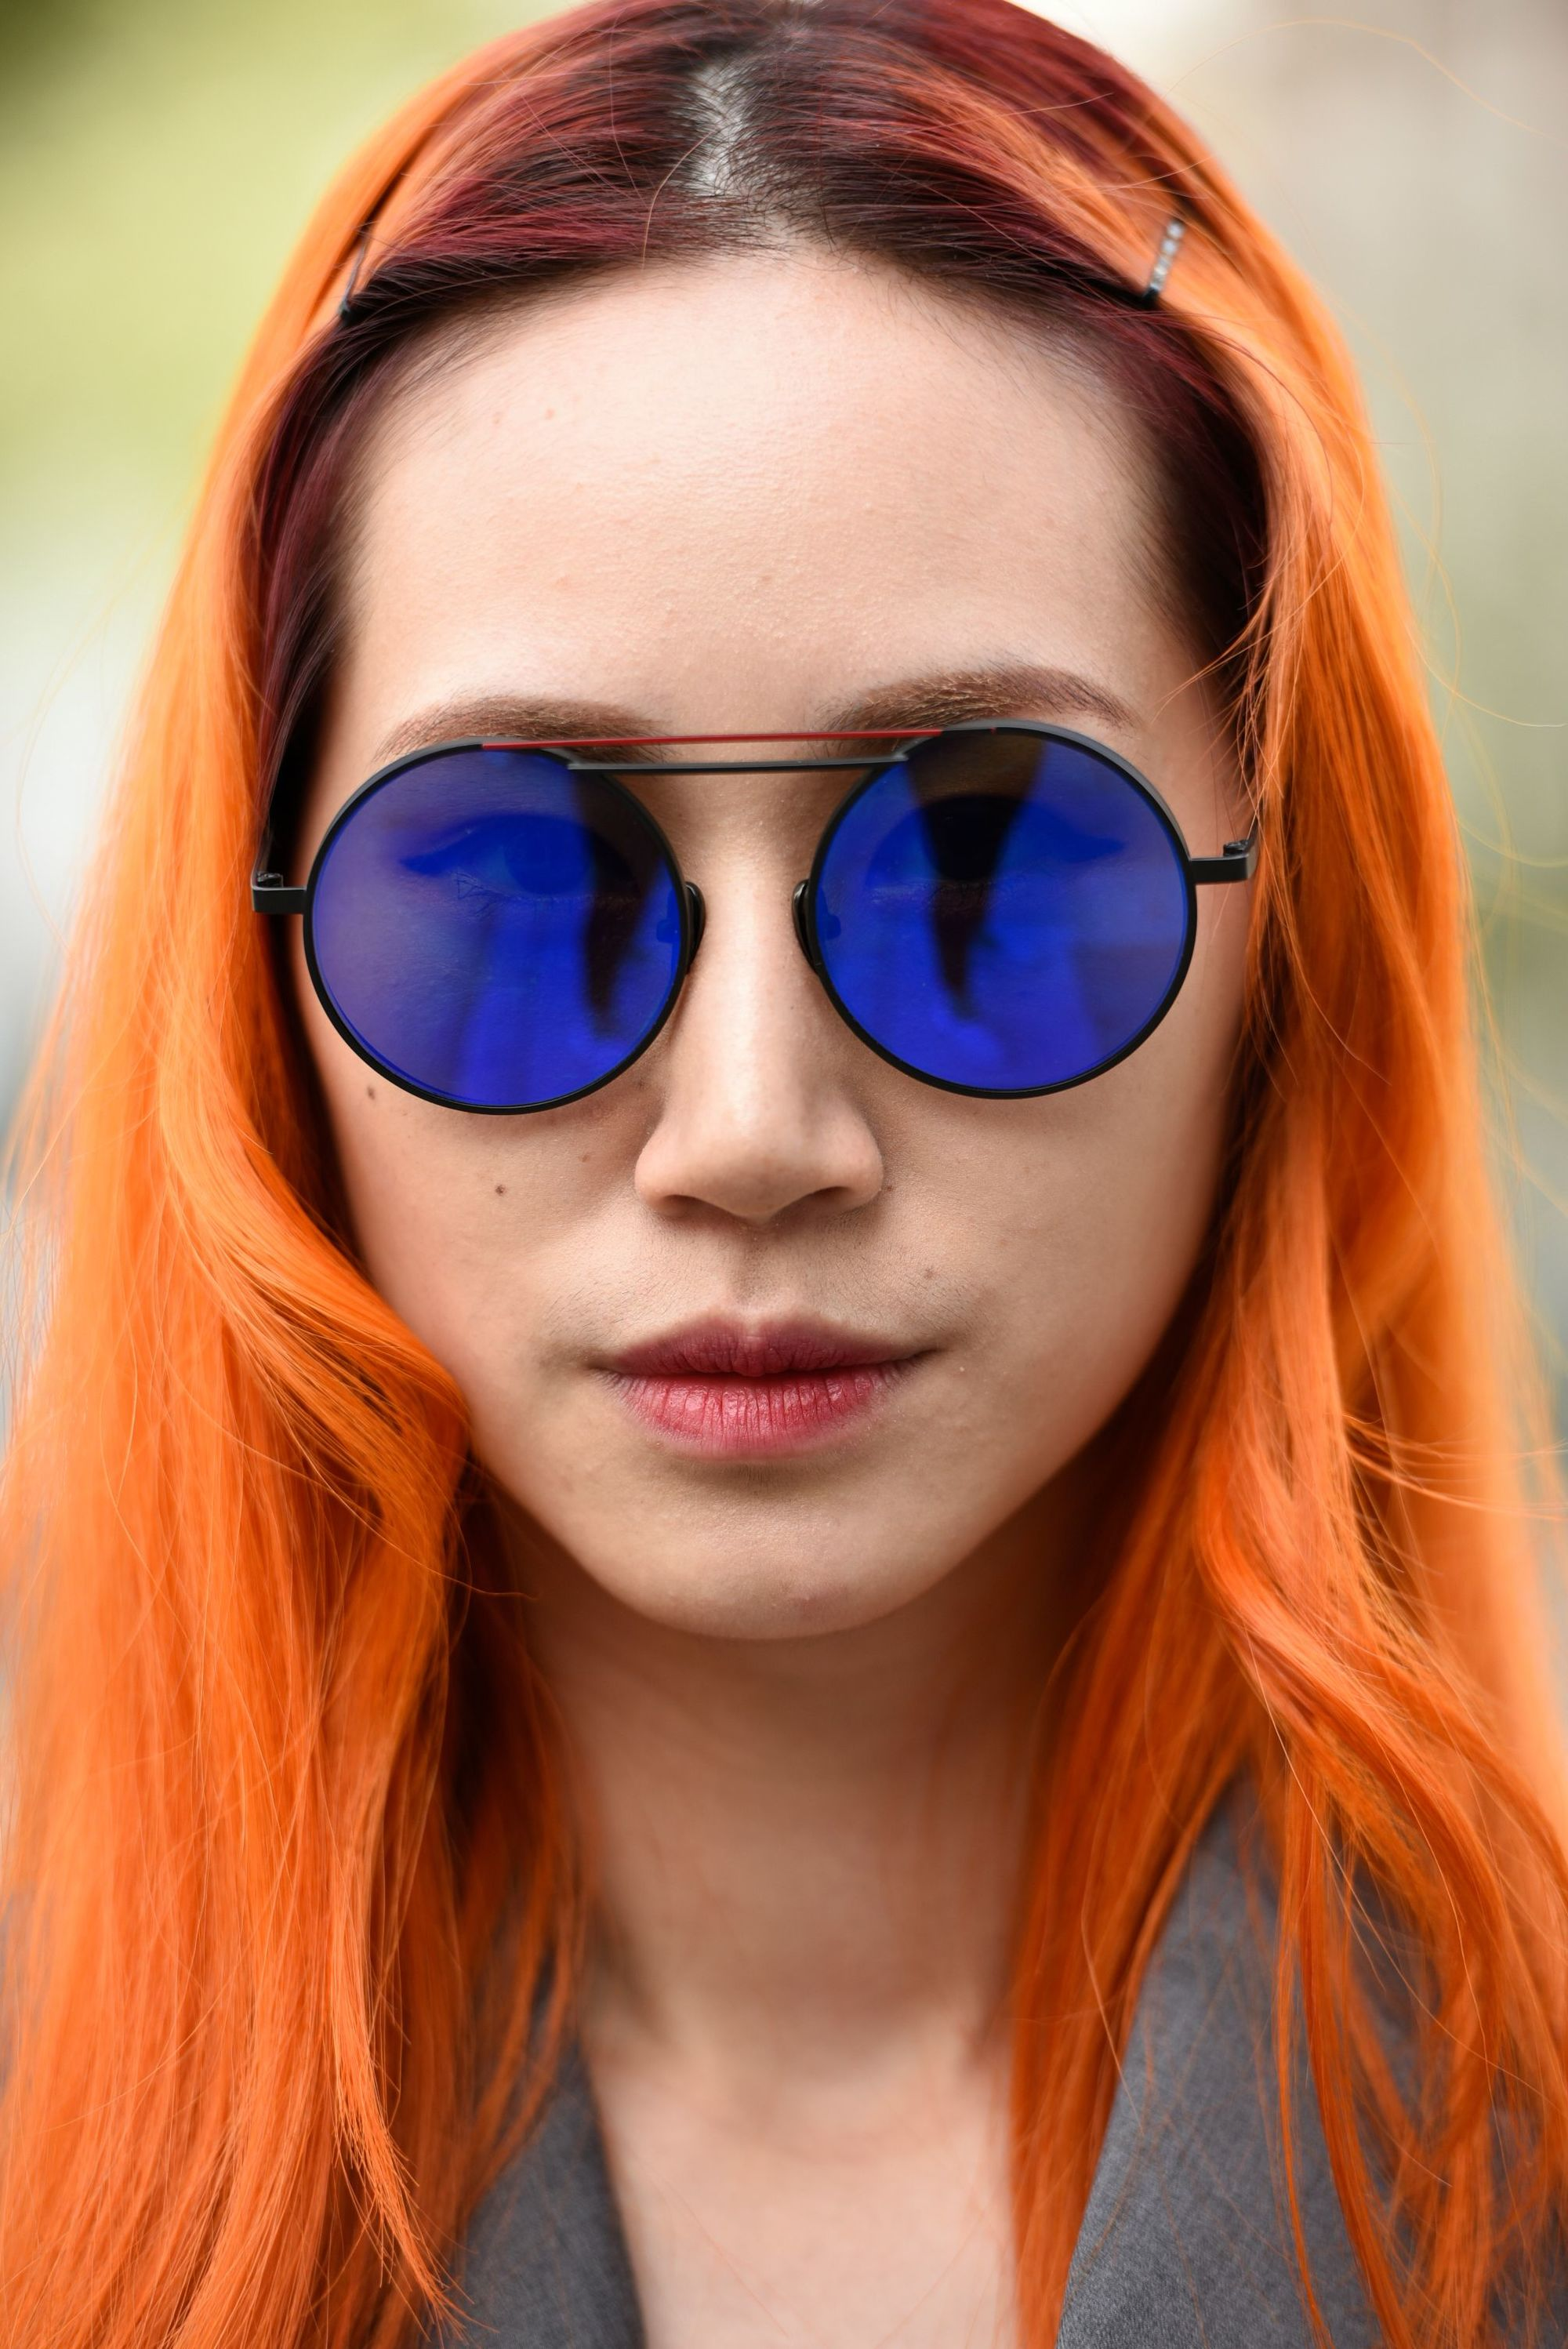 Does dyeing your hair damage it: Woman with long orange hair, wearing circle sunglasses and posing for a street style shot